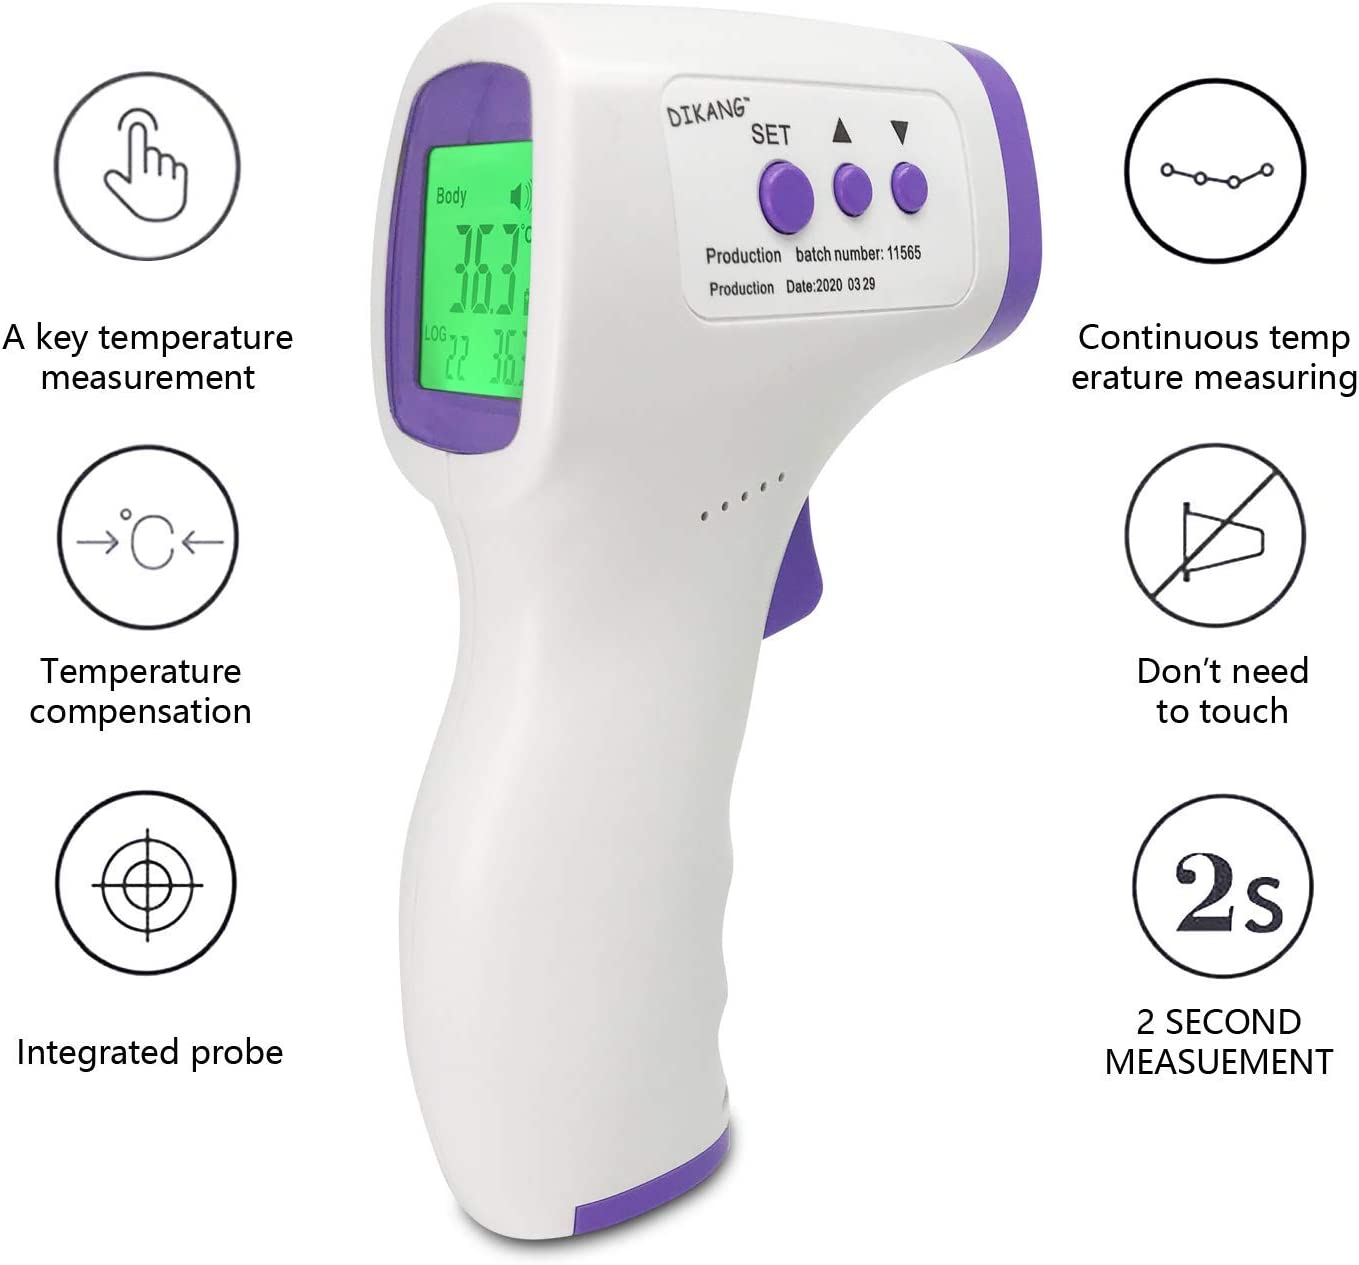 Infrared Digital Medical Thermometer - FDA/CE Approved Most Accurate Forehead Thermometer, Non-Contact 12 Group Data for Kids Adult Home School Office Hospital